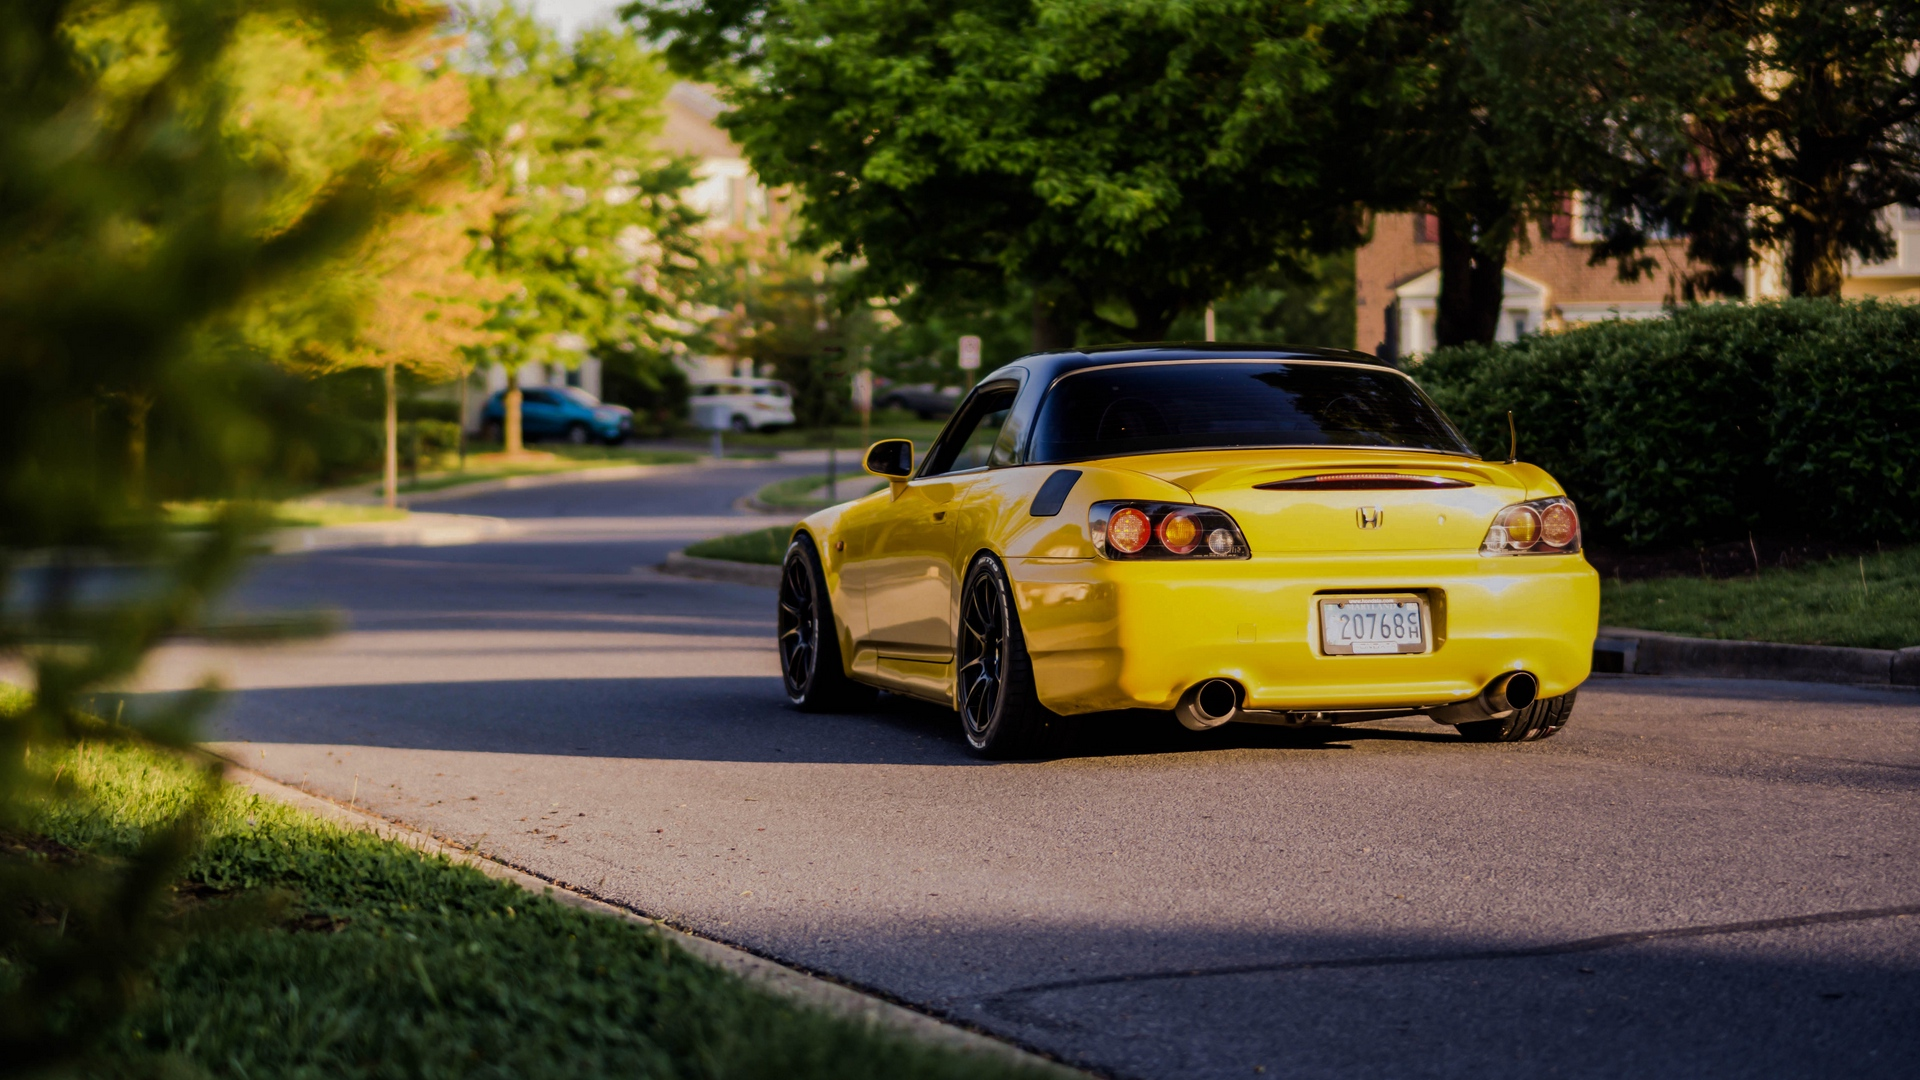 1920x1080 - Honda S2000 Wallpapers 22